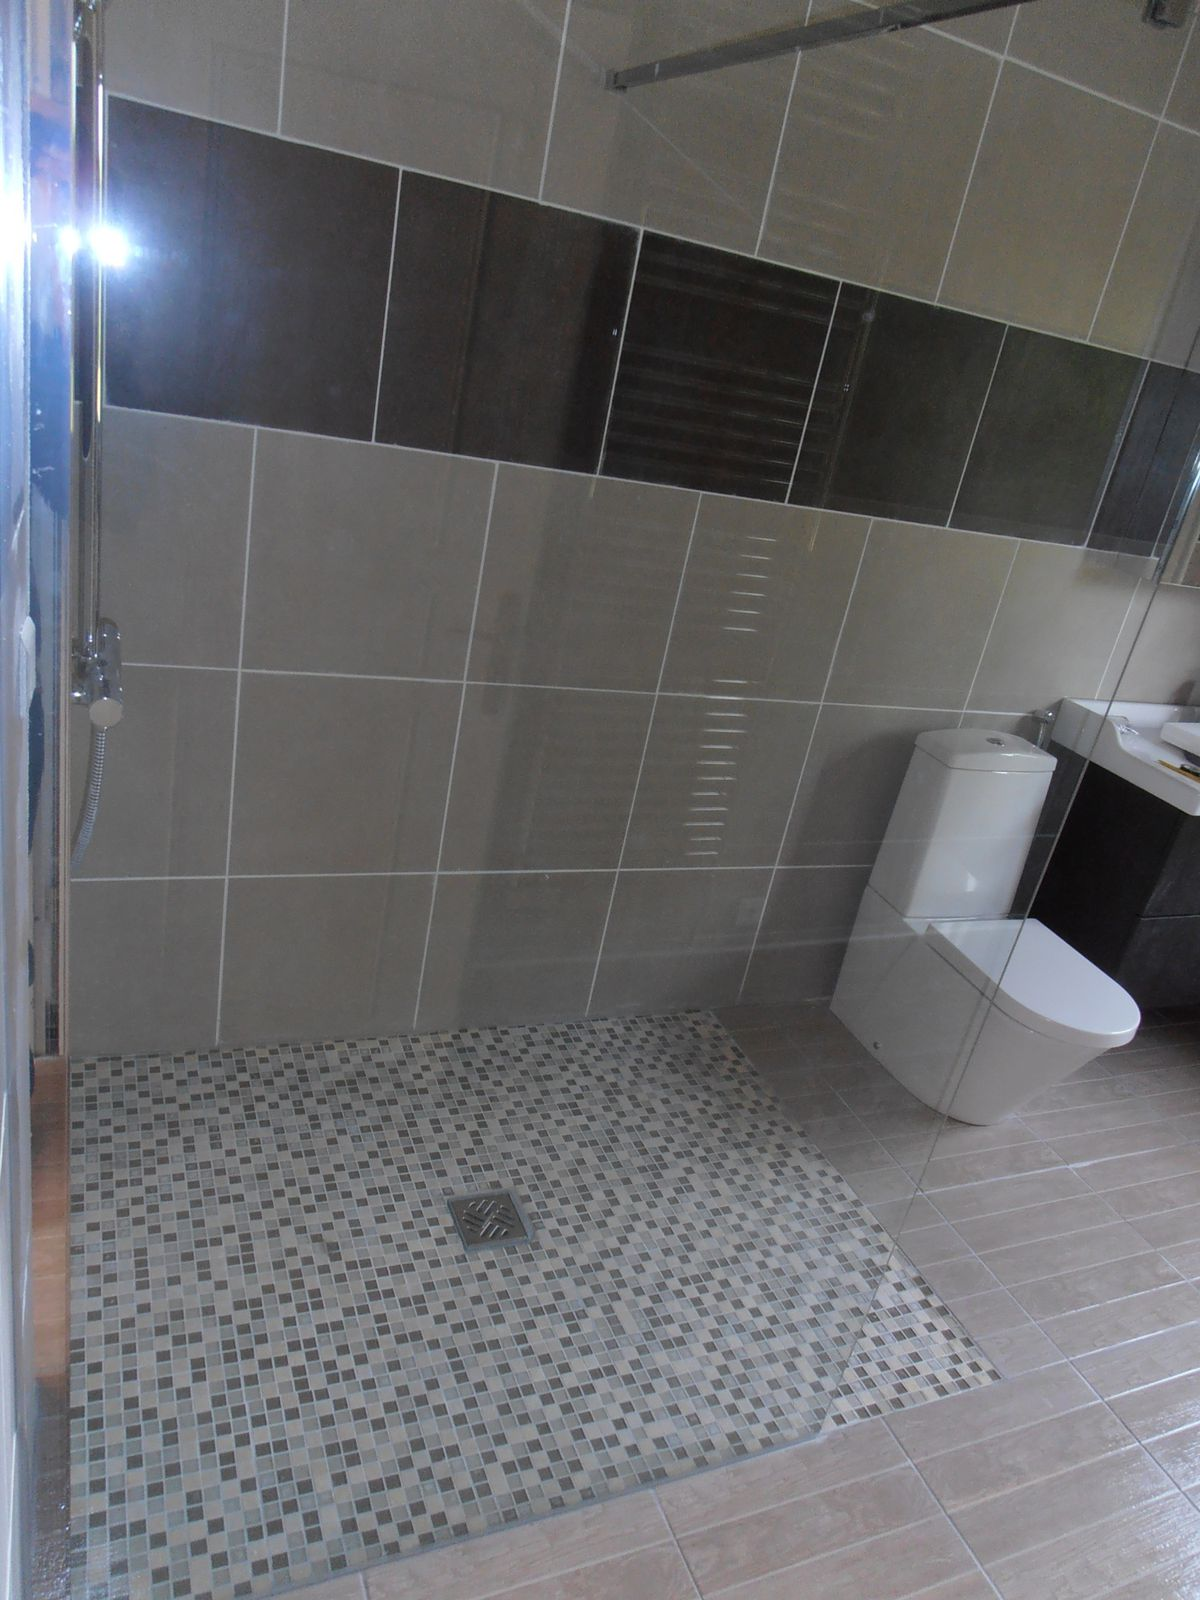 Cr ation d 39 une douche l 39 italienne l 39 entreprise legrand for Douches a l italienne photos